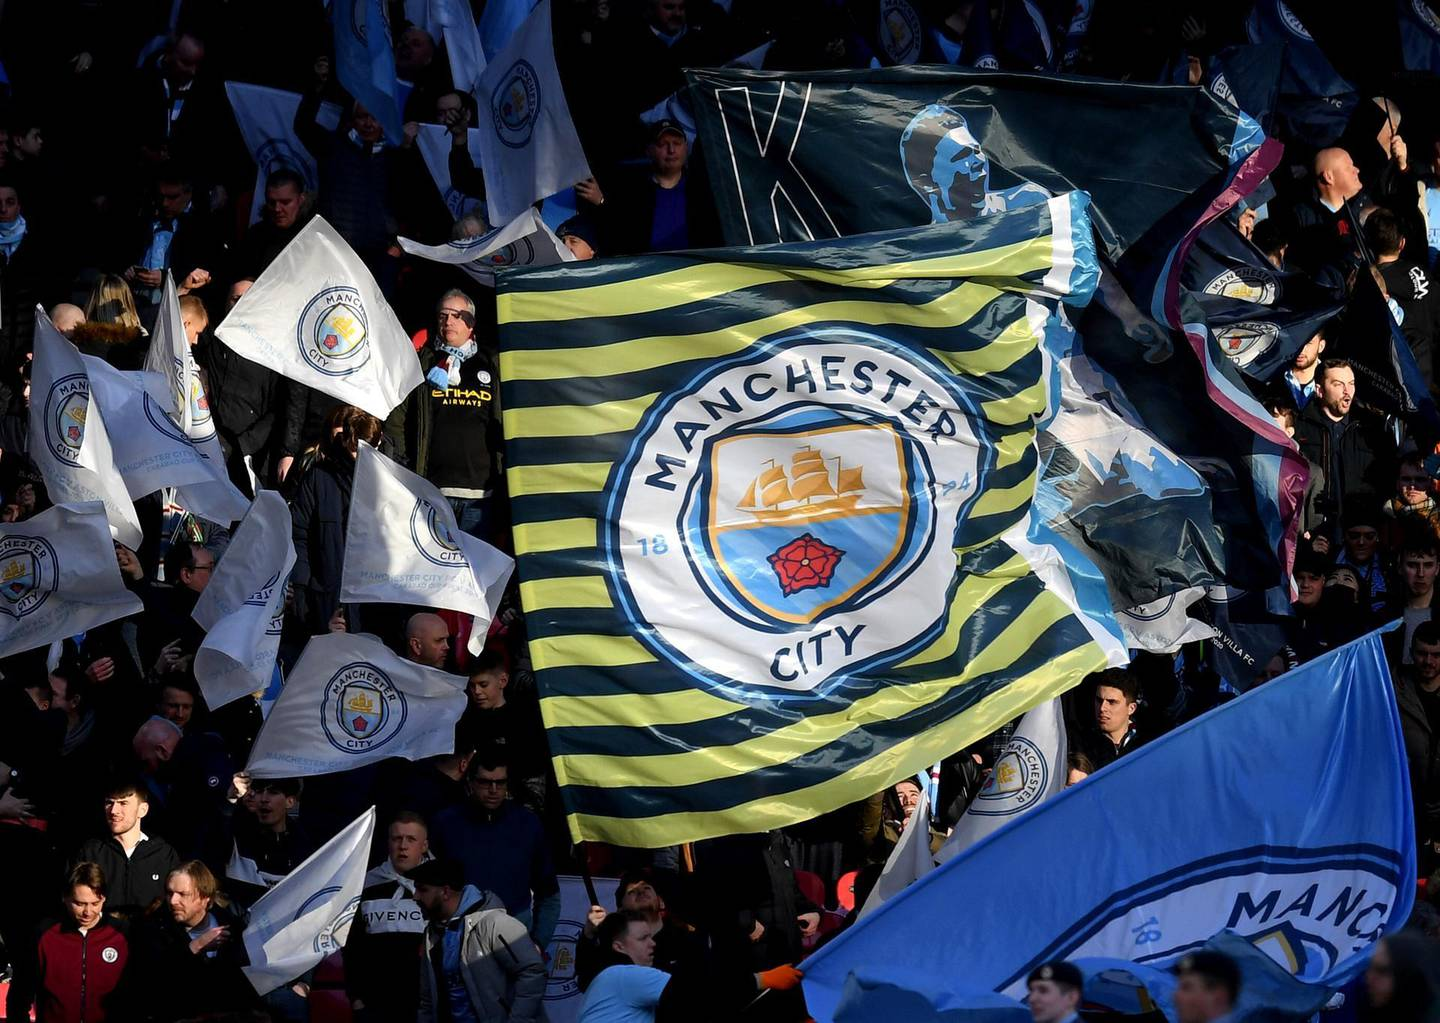 LONDON, ENGLAND - MARCH 01: Fans wave flags prior to the Carabao Cup Final between Aston Villa and Manchester City at Wembley Stadium on March 01, 2020 in London, England. (Photo by Michael Regan/Getty Images)